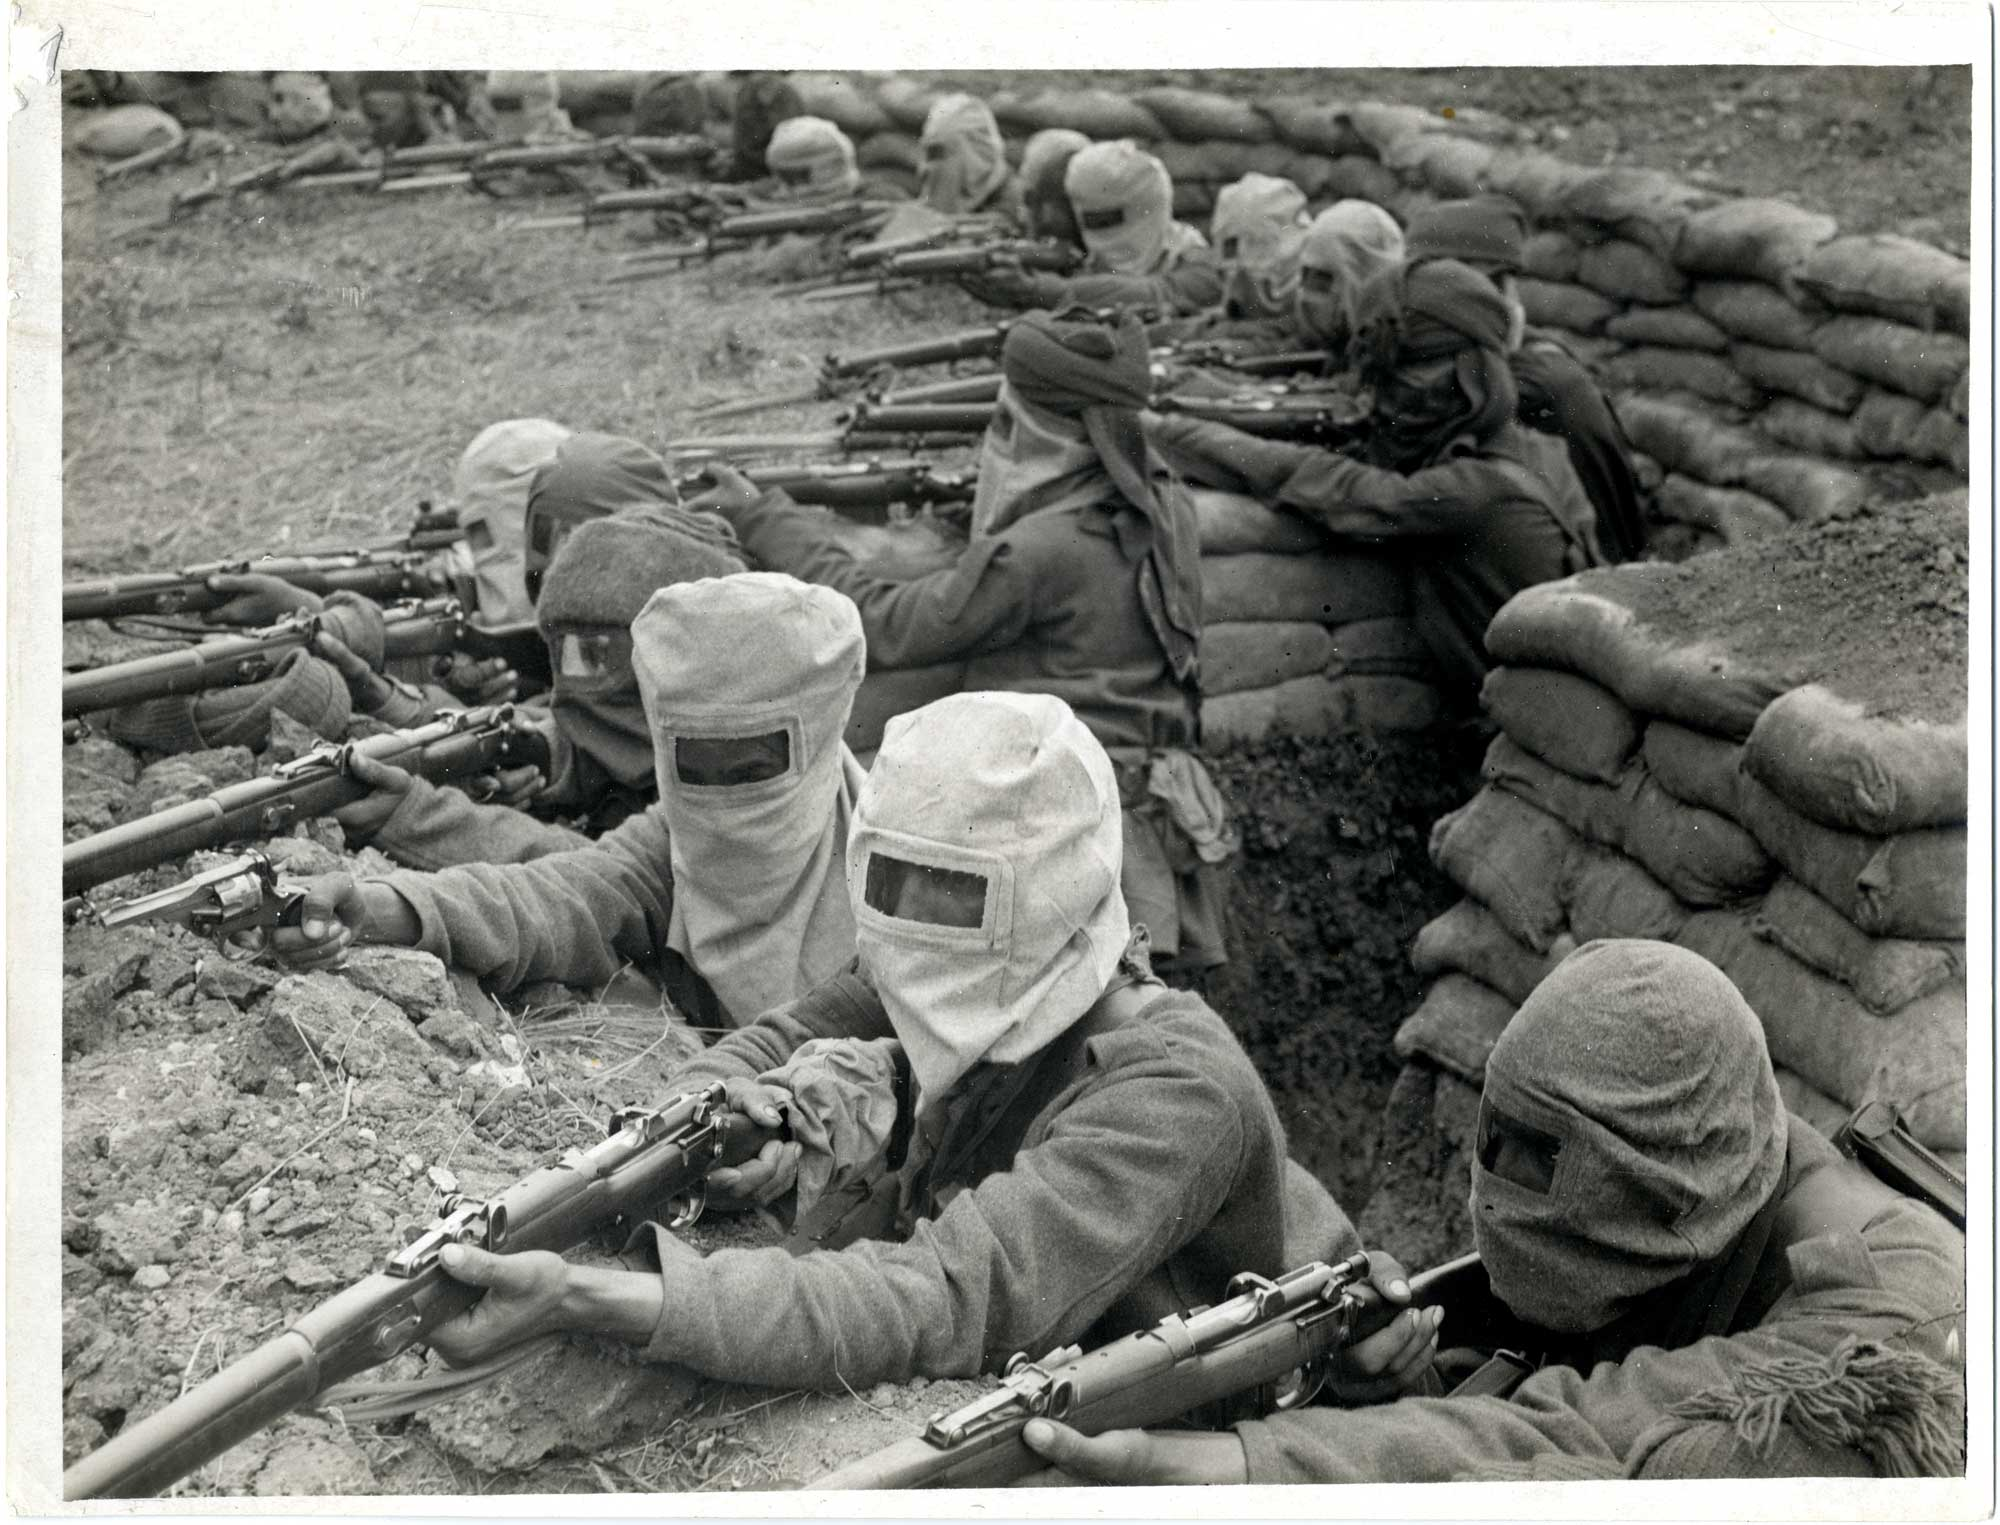 The Uses of Photography in World War I